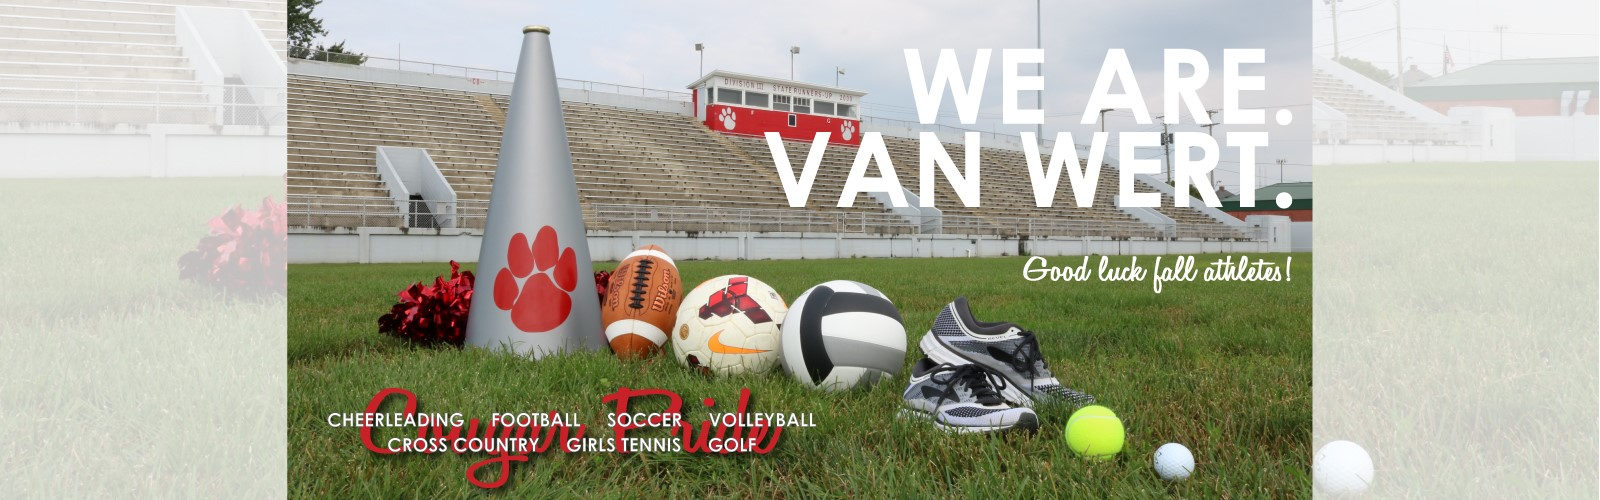 We Are Van Wert. Fall sports ad wishing athletes good luck this season.